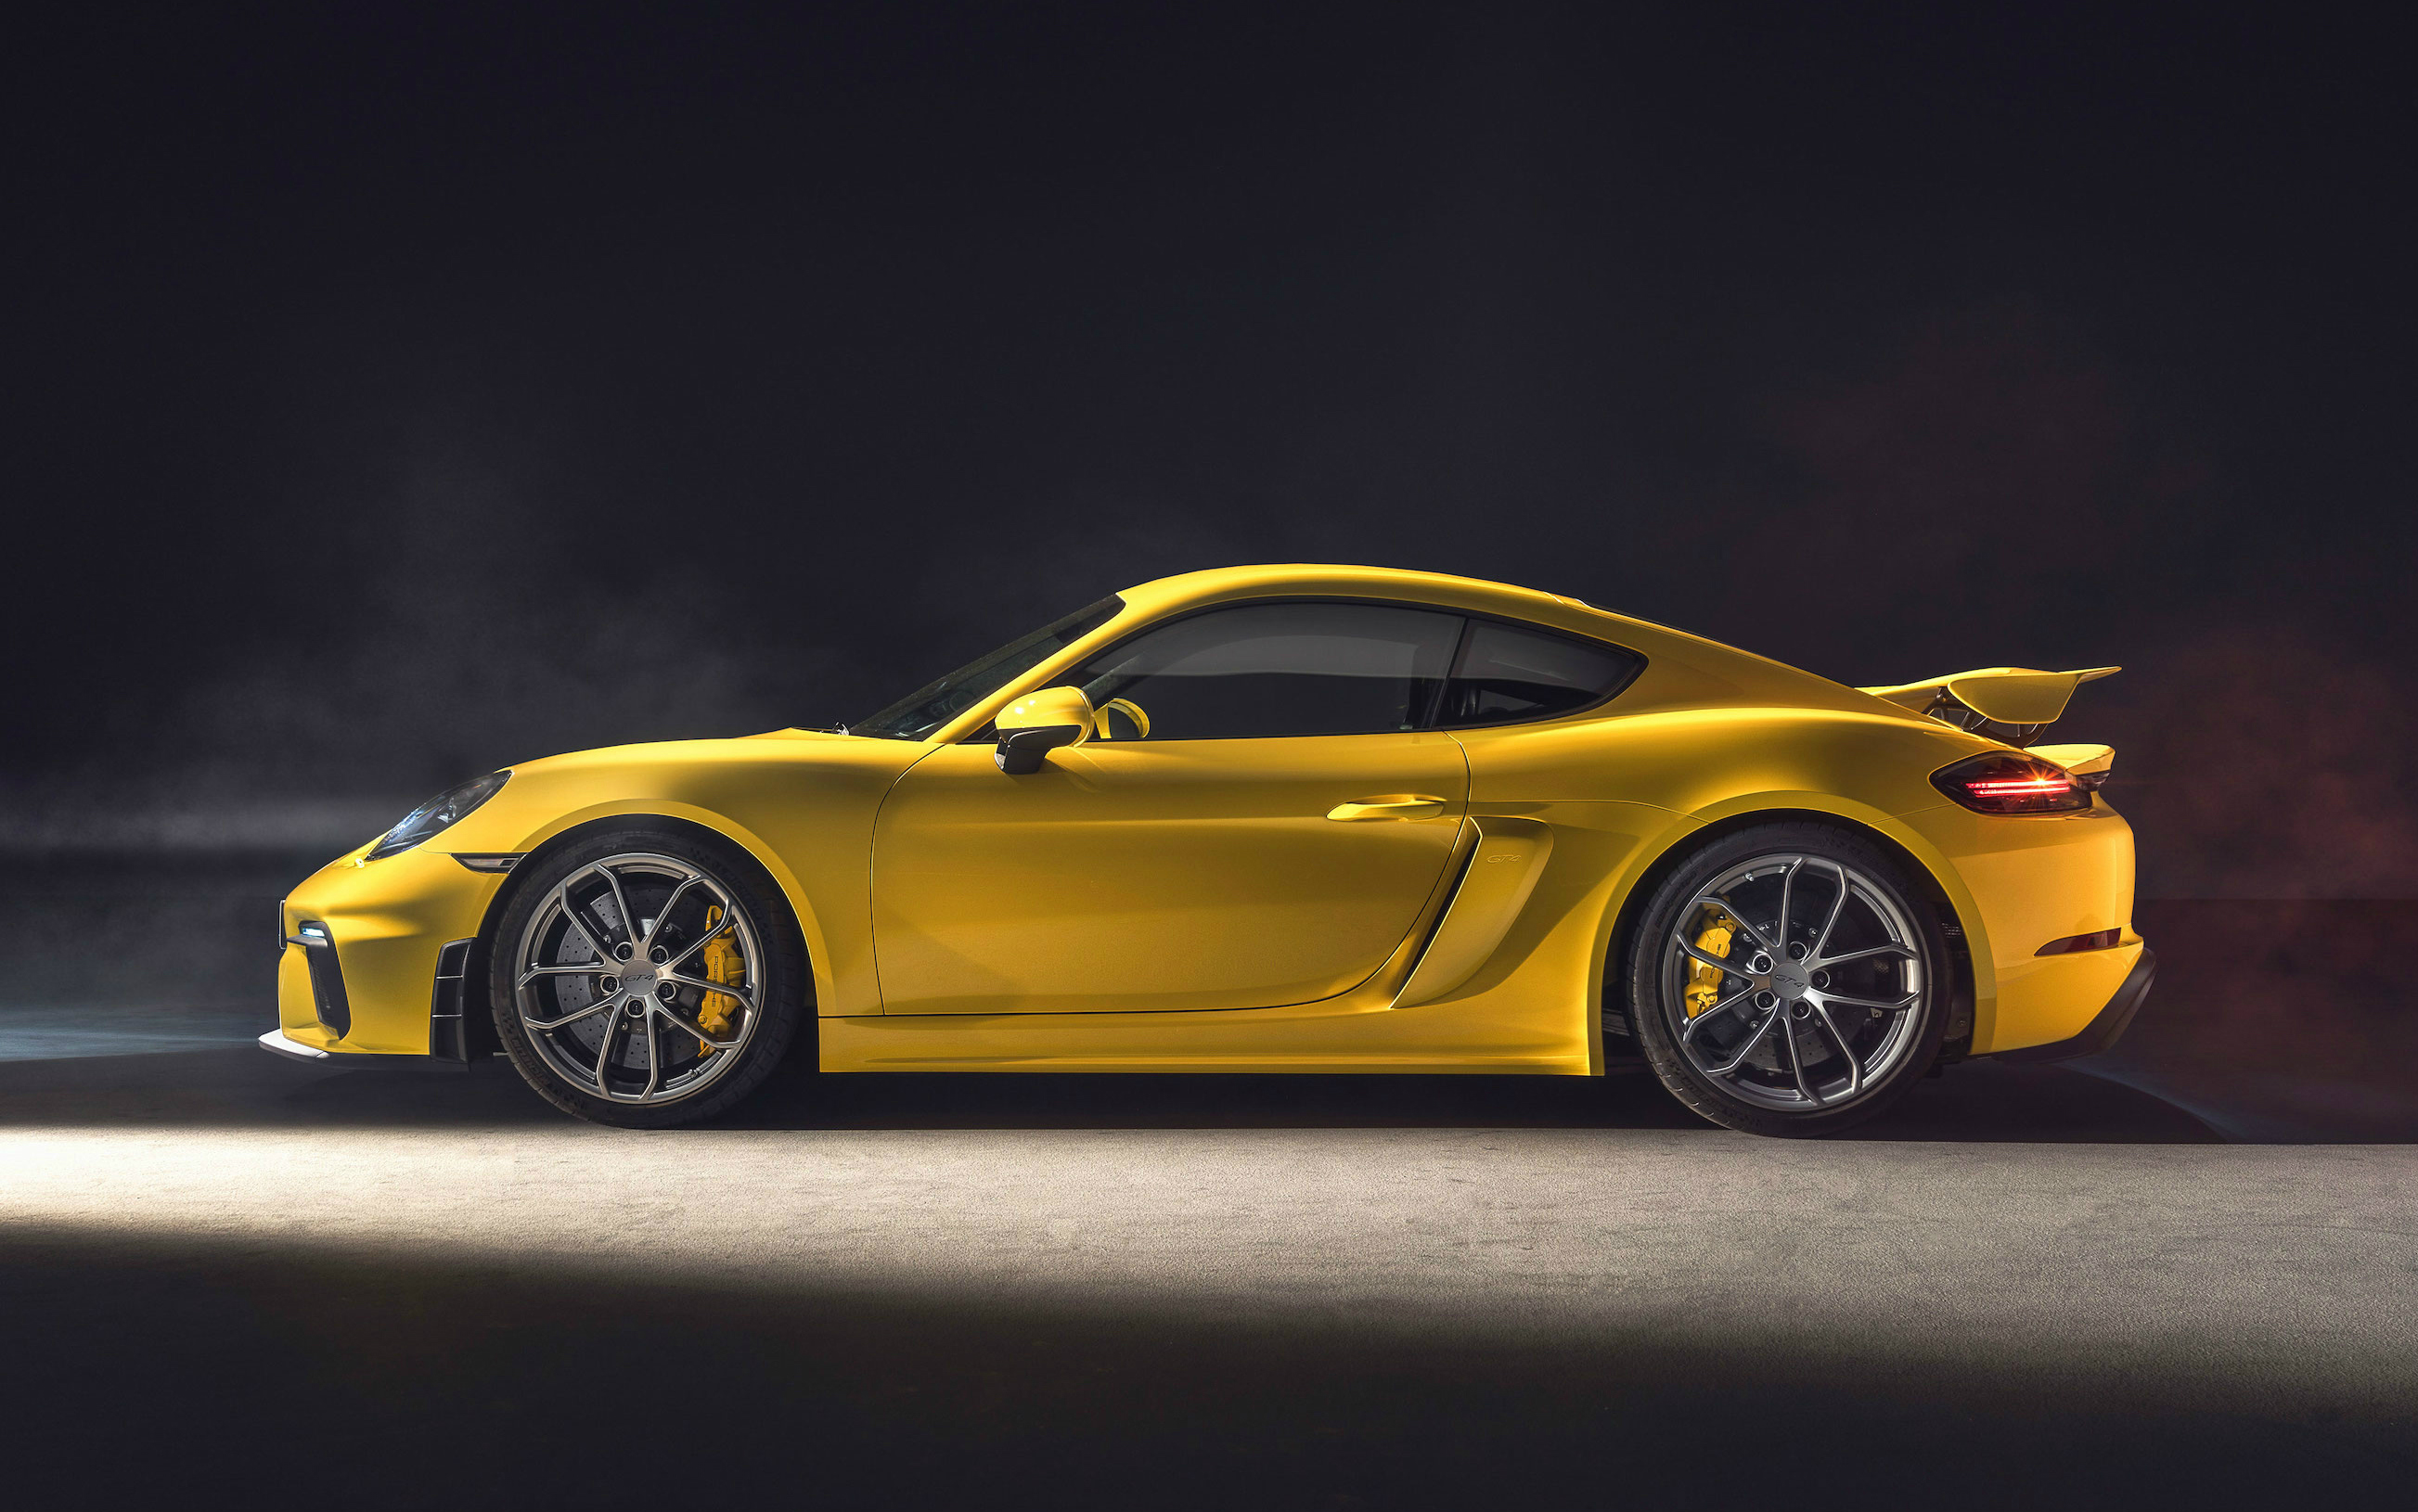 The New Porsche 718 Cayman GT4